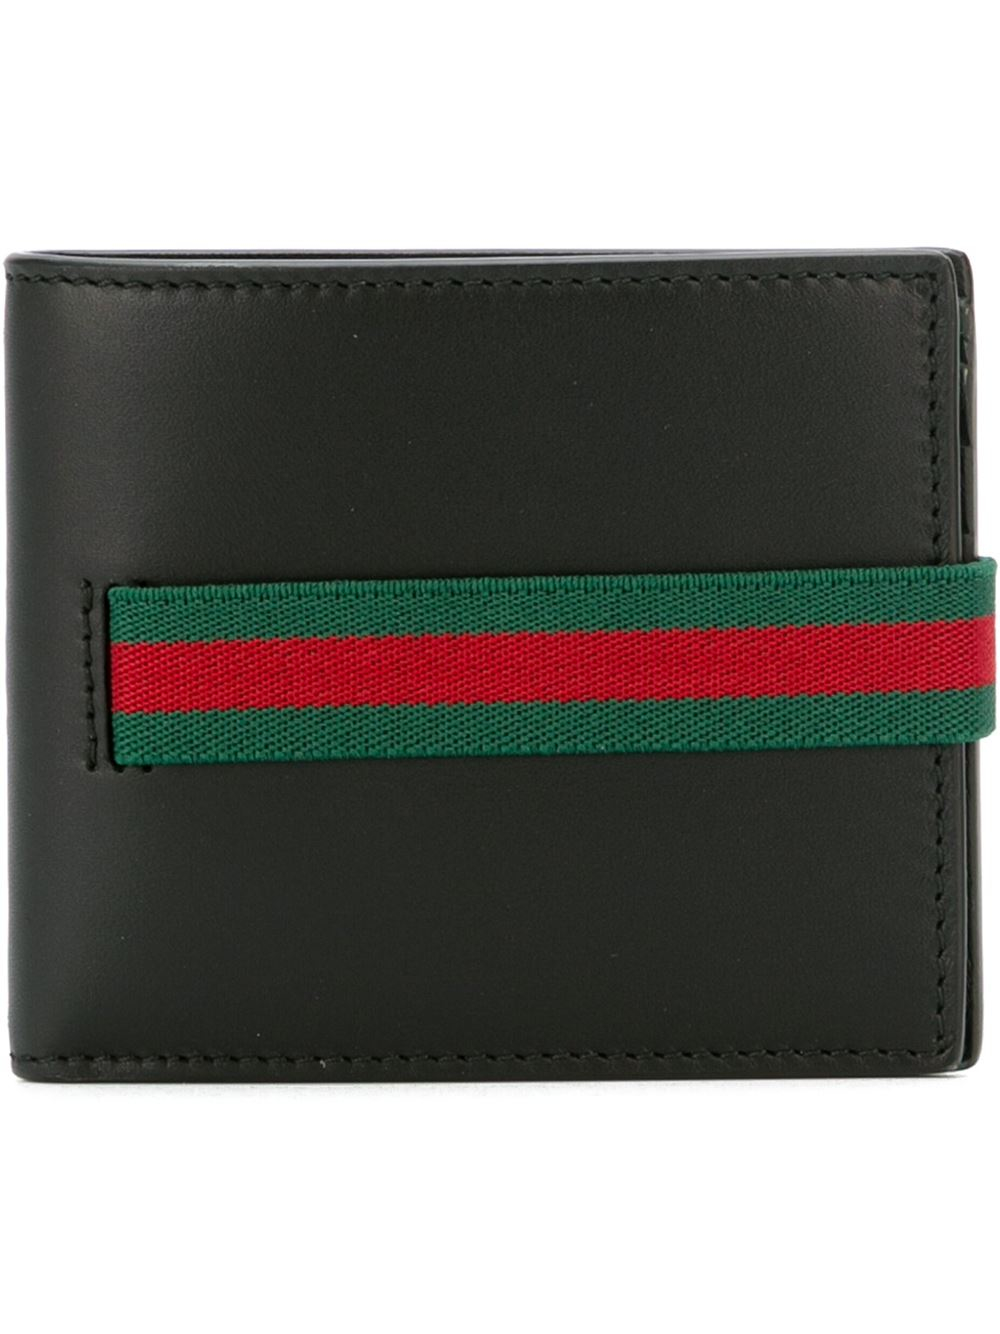 Gucci Elastic Wallet In Red For Men Lyst